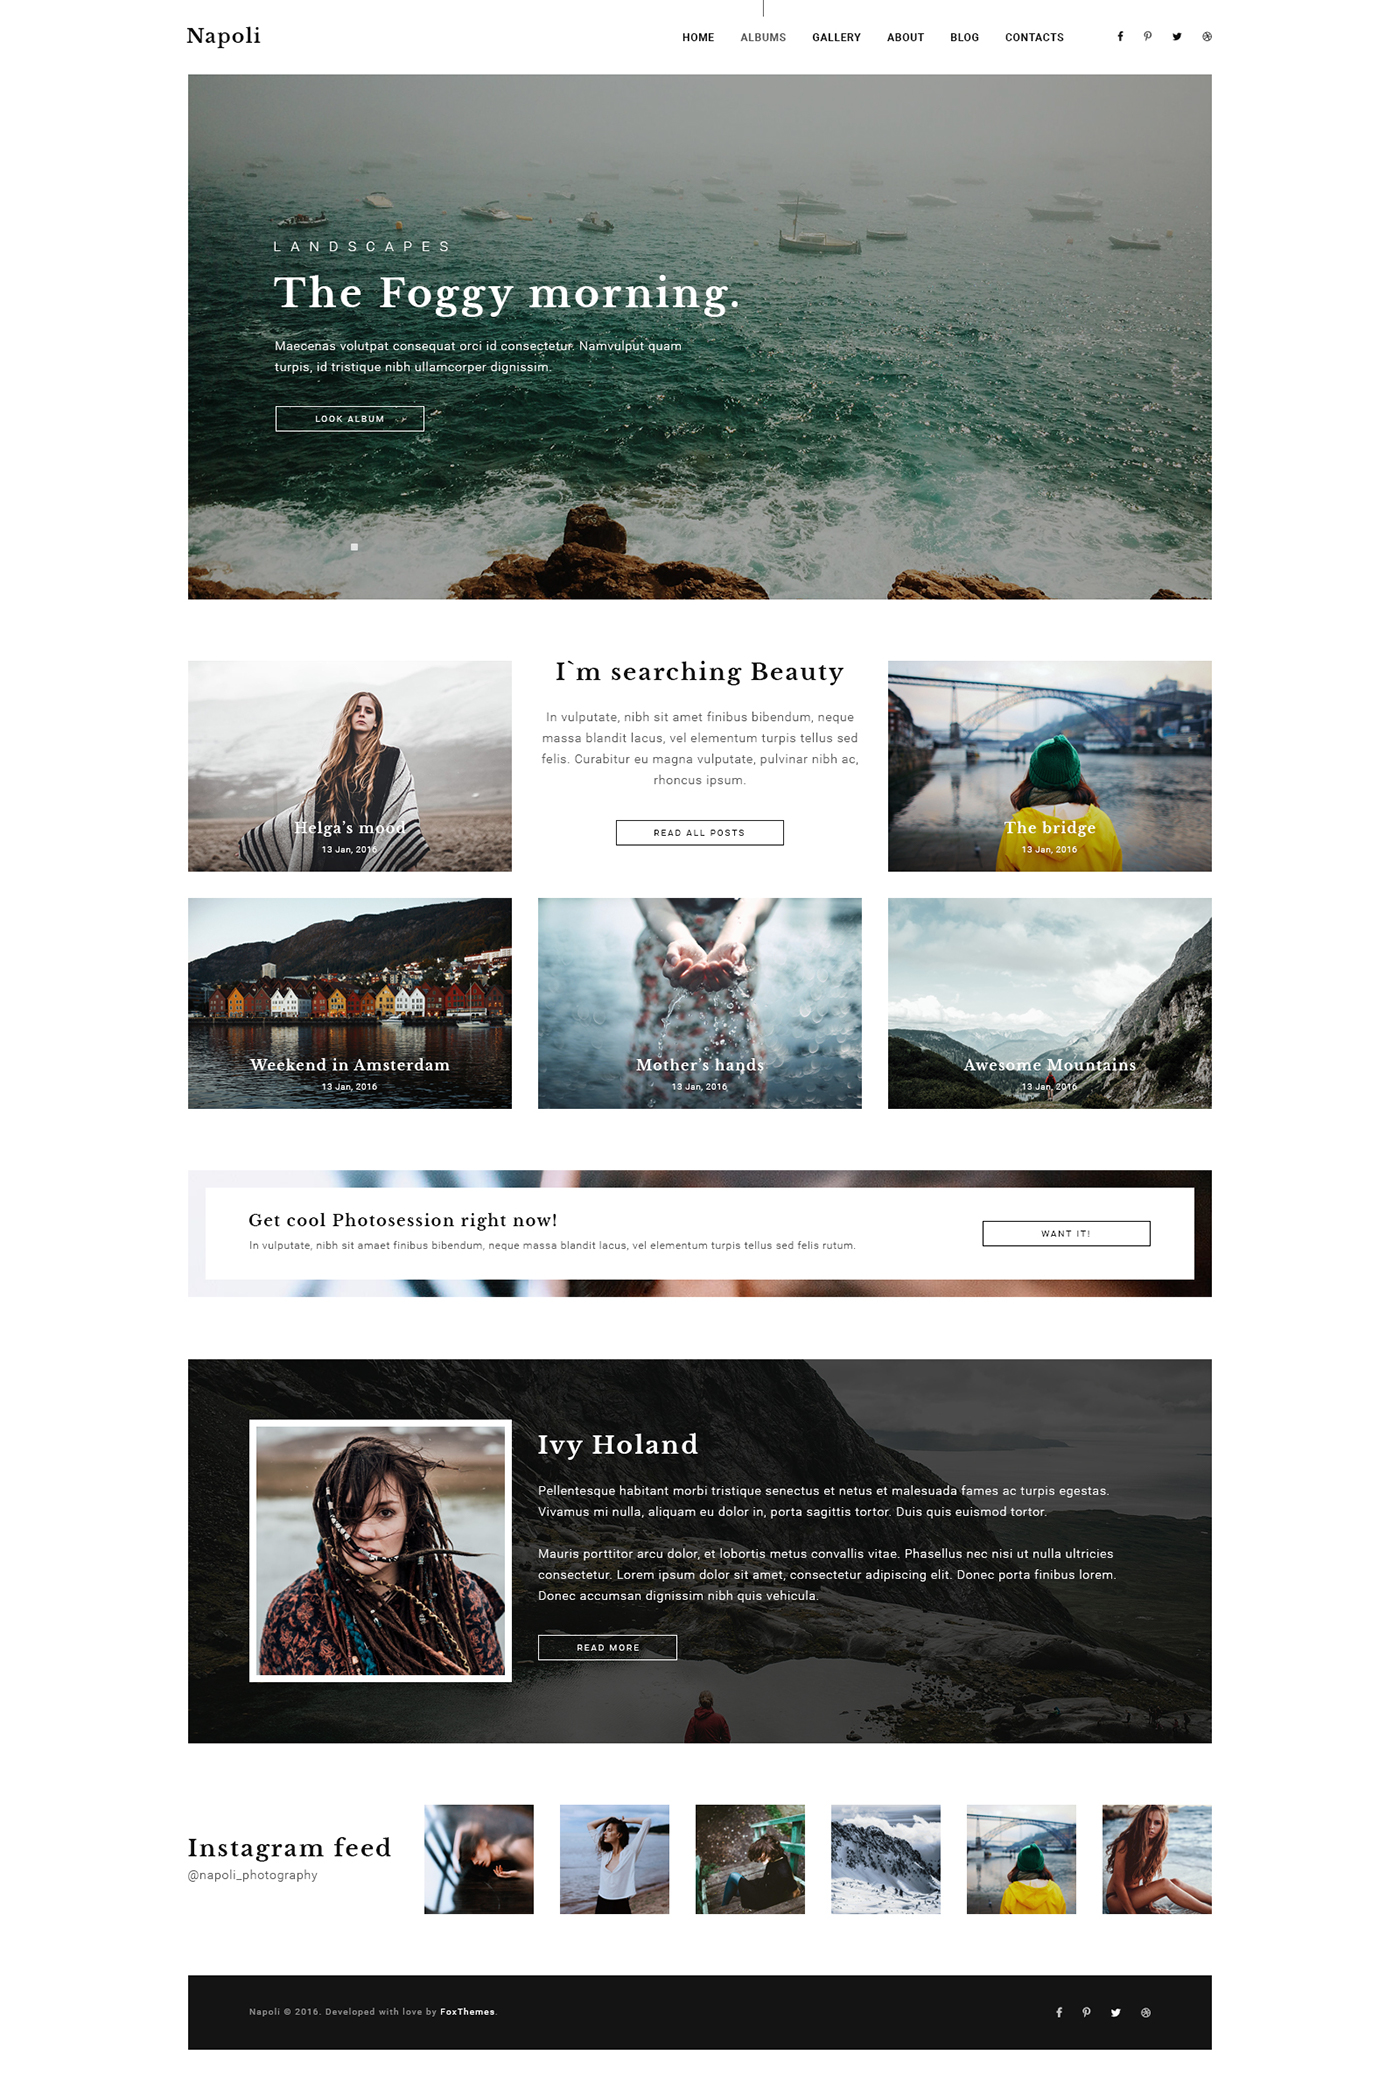 Napoli Modern Photography Portfolio Theme On Behance - Photography portfolio template